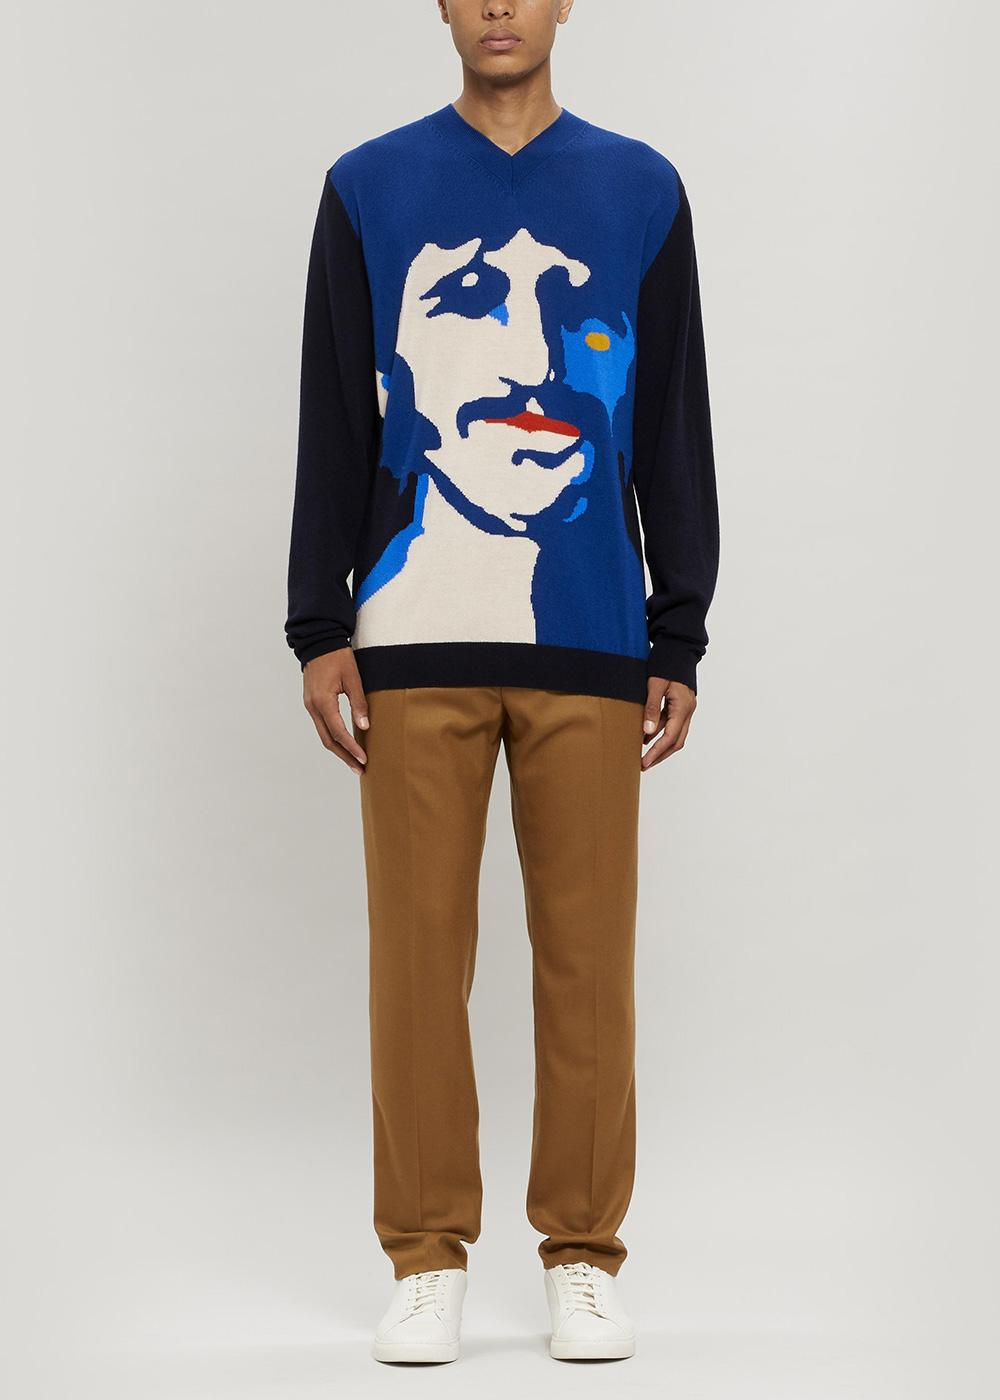 Stella McCartney Ringo Starr jumper